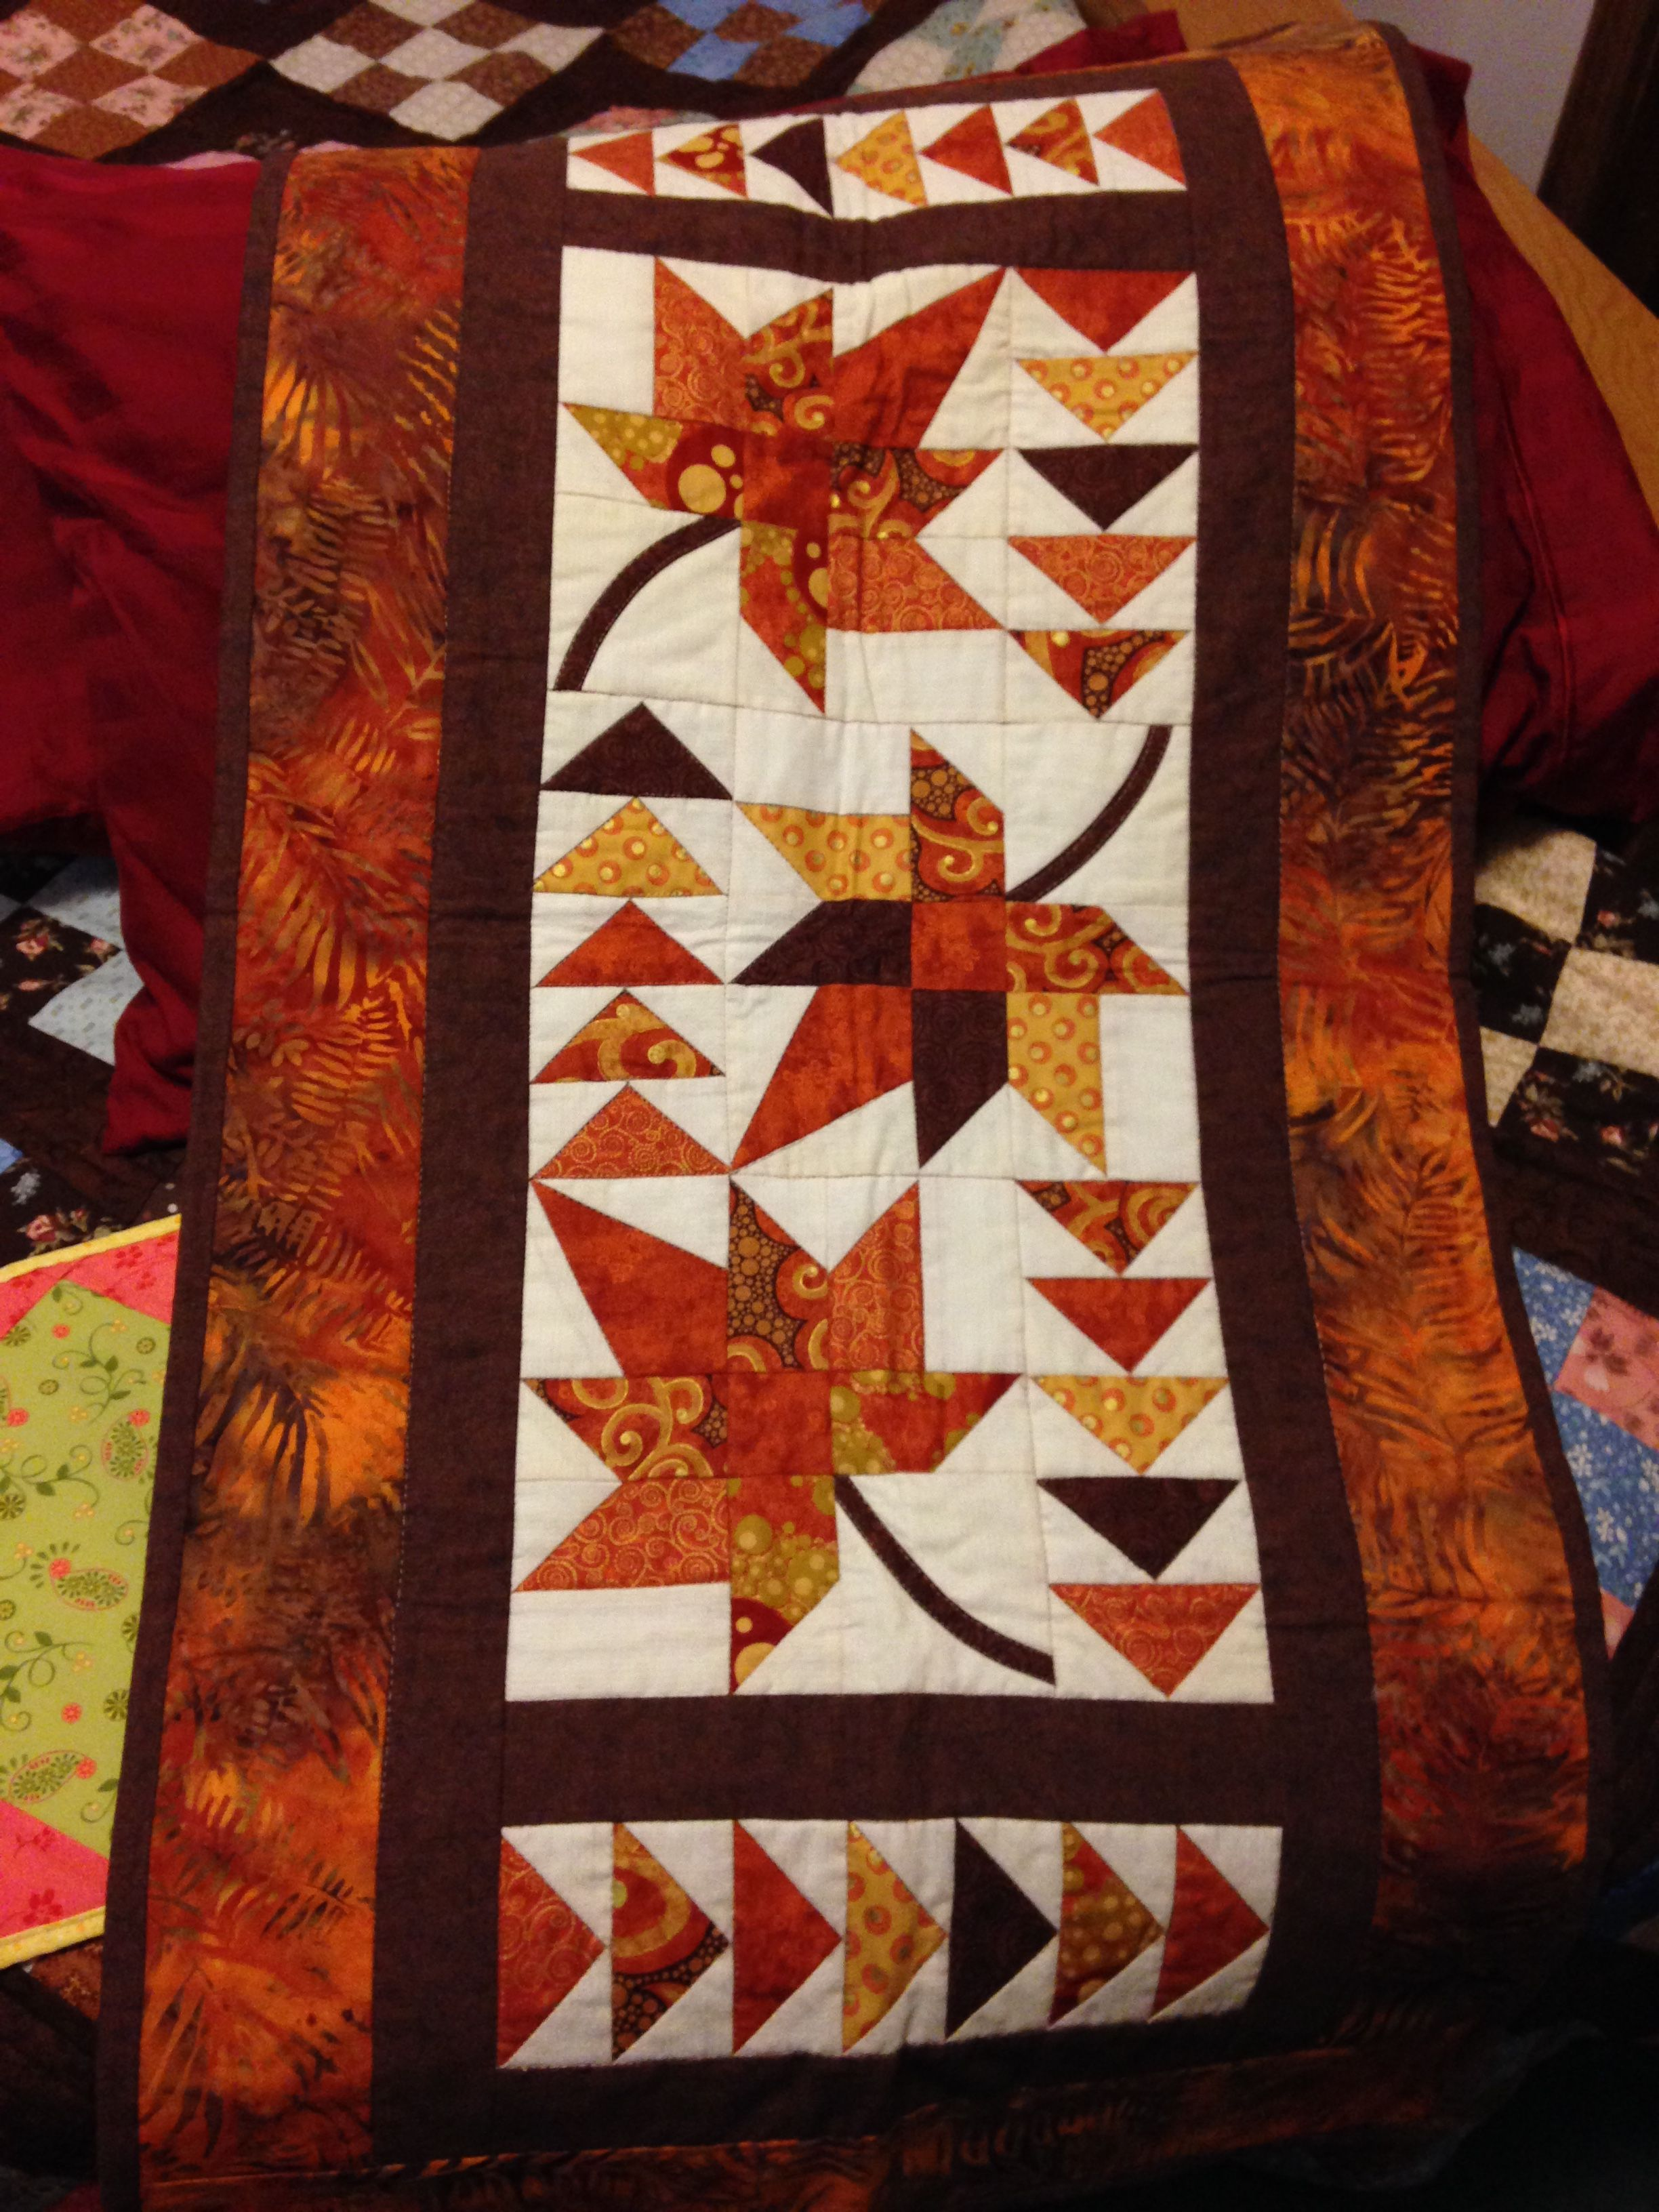 Signs of Autumn Quilt Pattern Studio 180 Designs Wall Quilt Table Runner